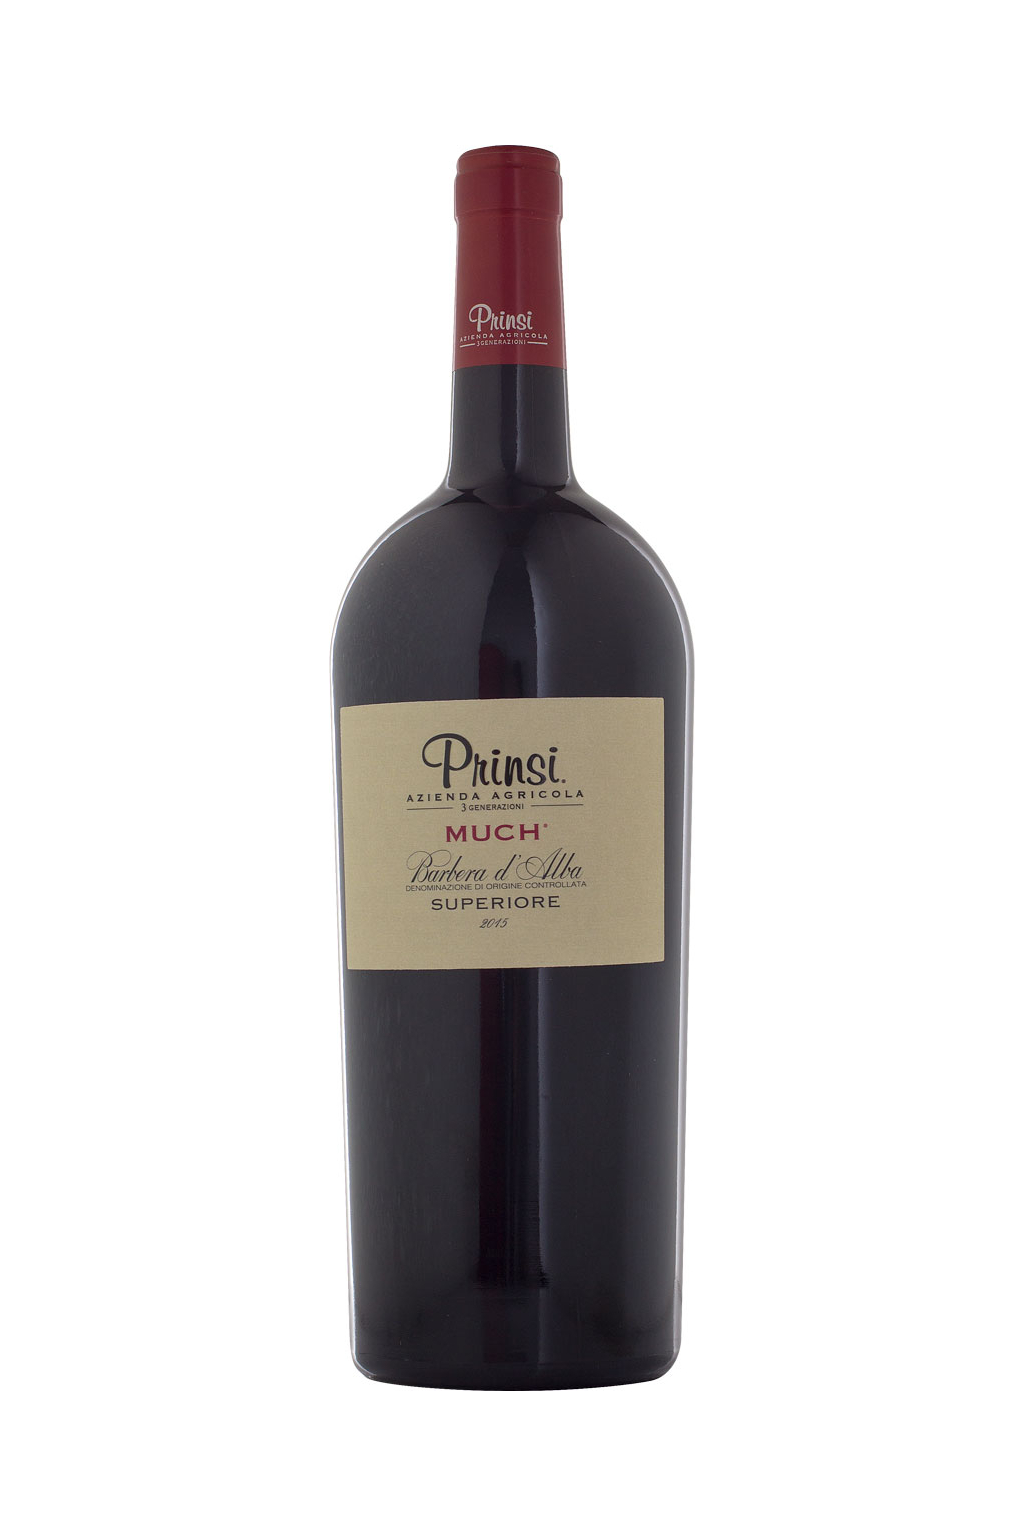 Barbera d'Alba Much Magnum 1,5l